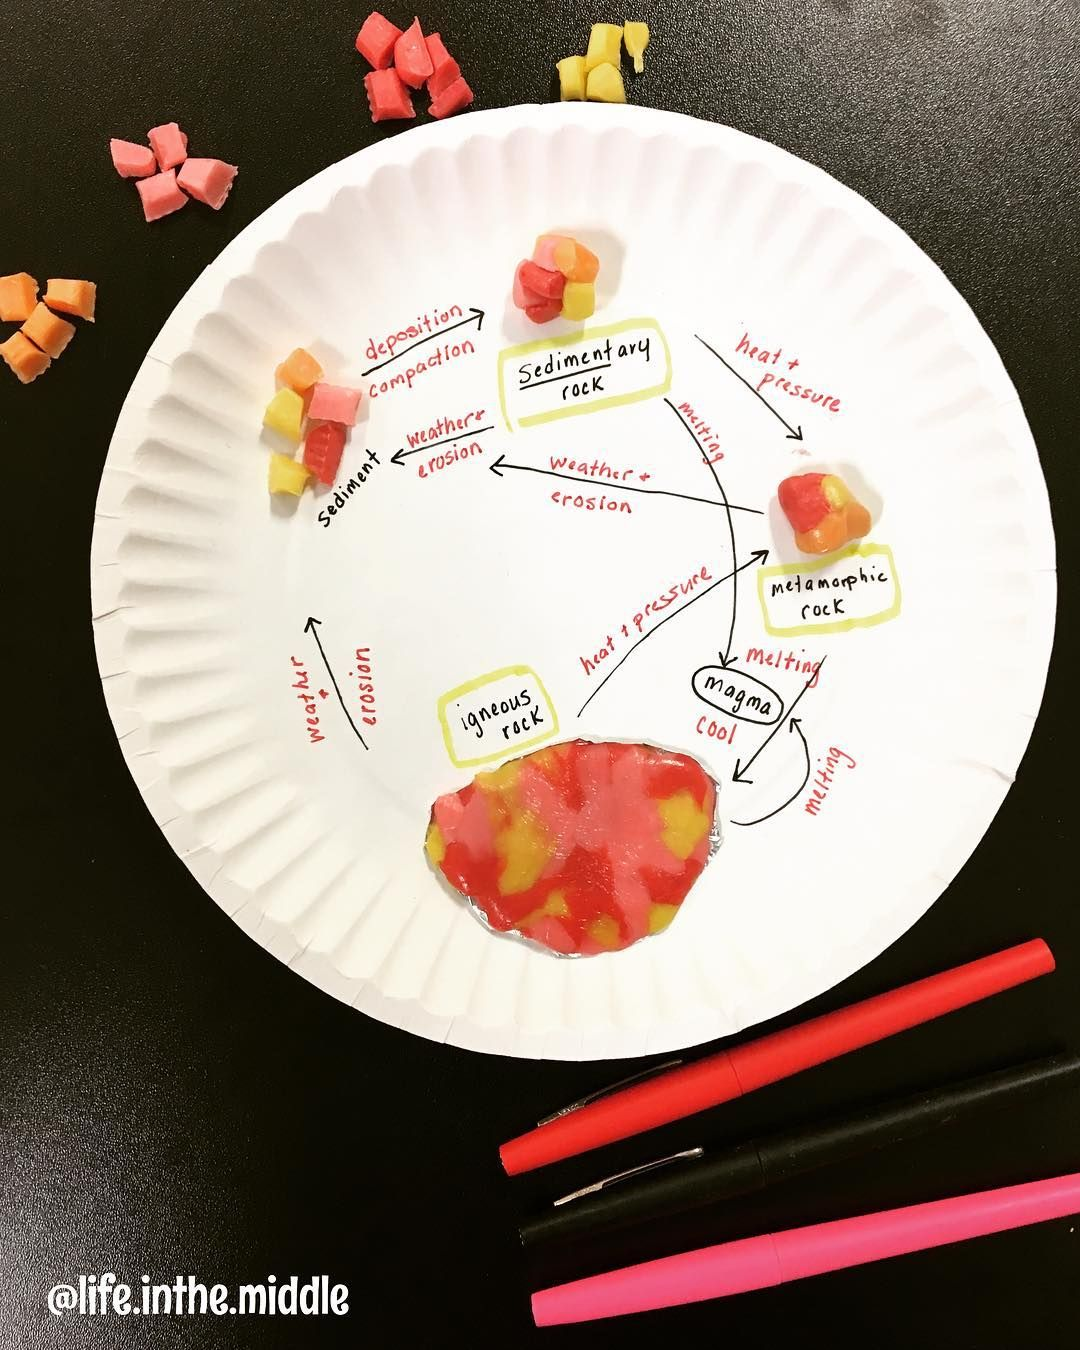 Mrs G On Instagram The Starburst Rock Cycle Just Never